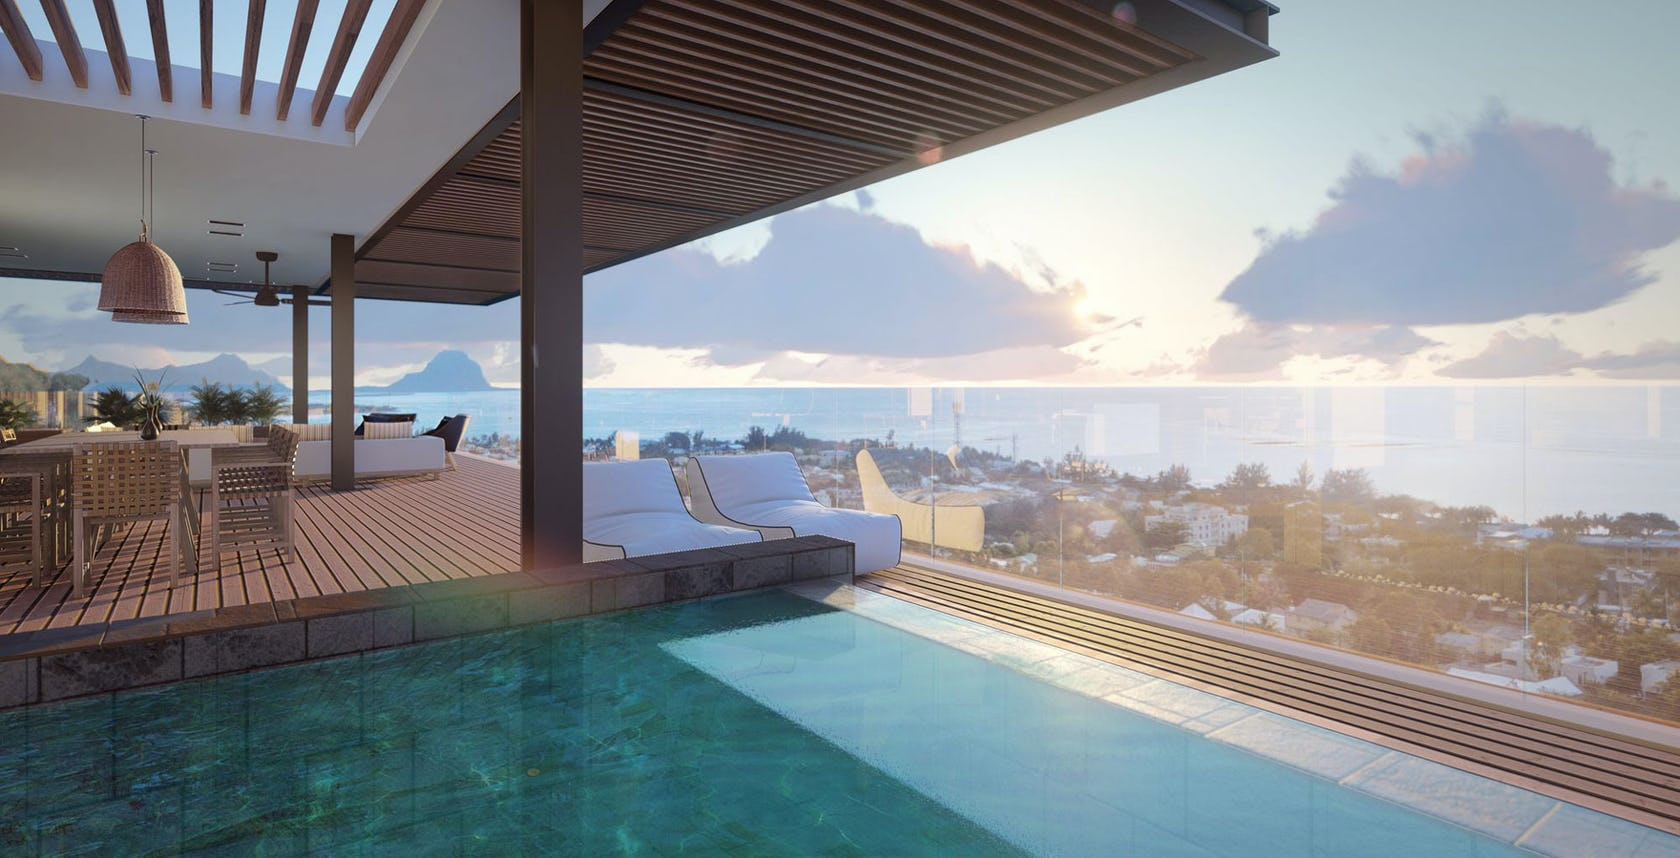 Legend Hill, an exceptional project with breathtaking views